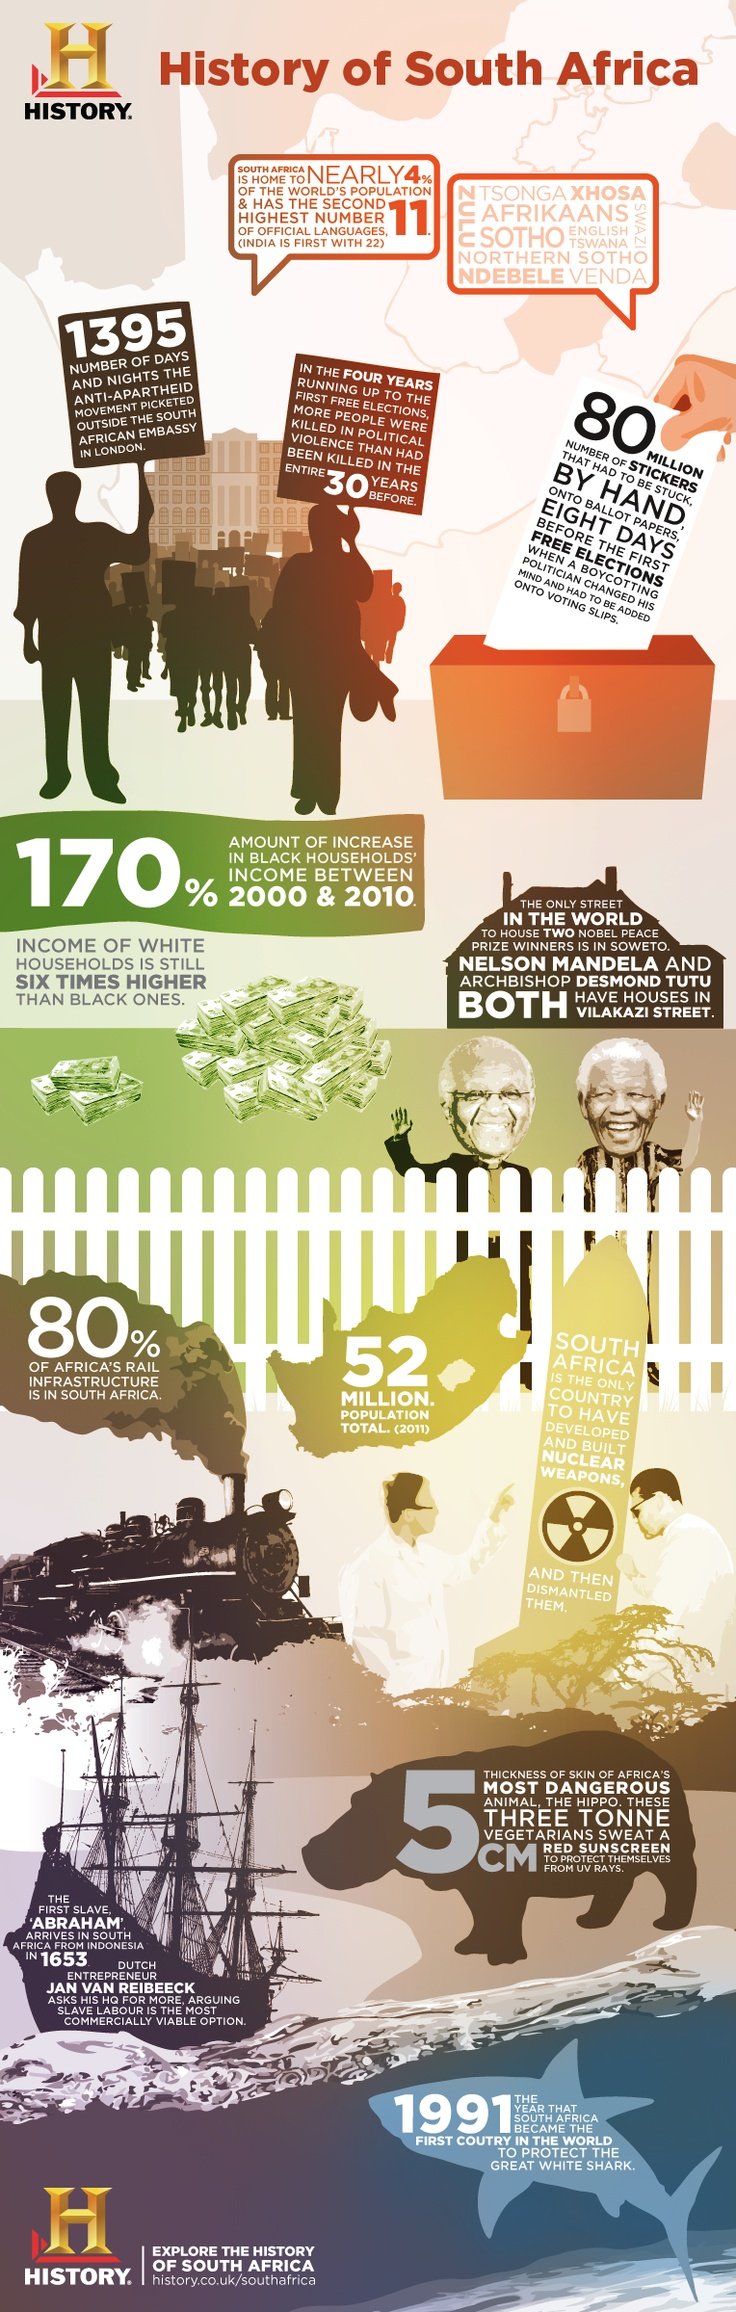 Not really the History of South Africa, but rather some interesting historical facts :)